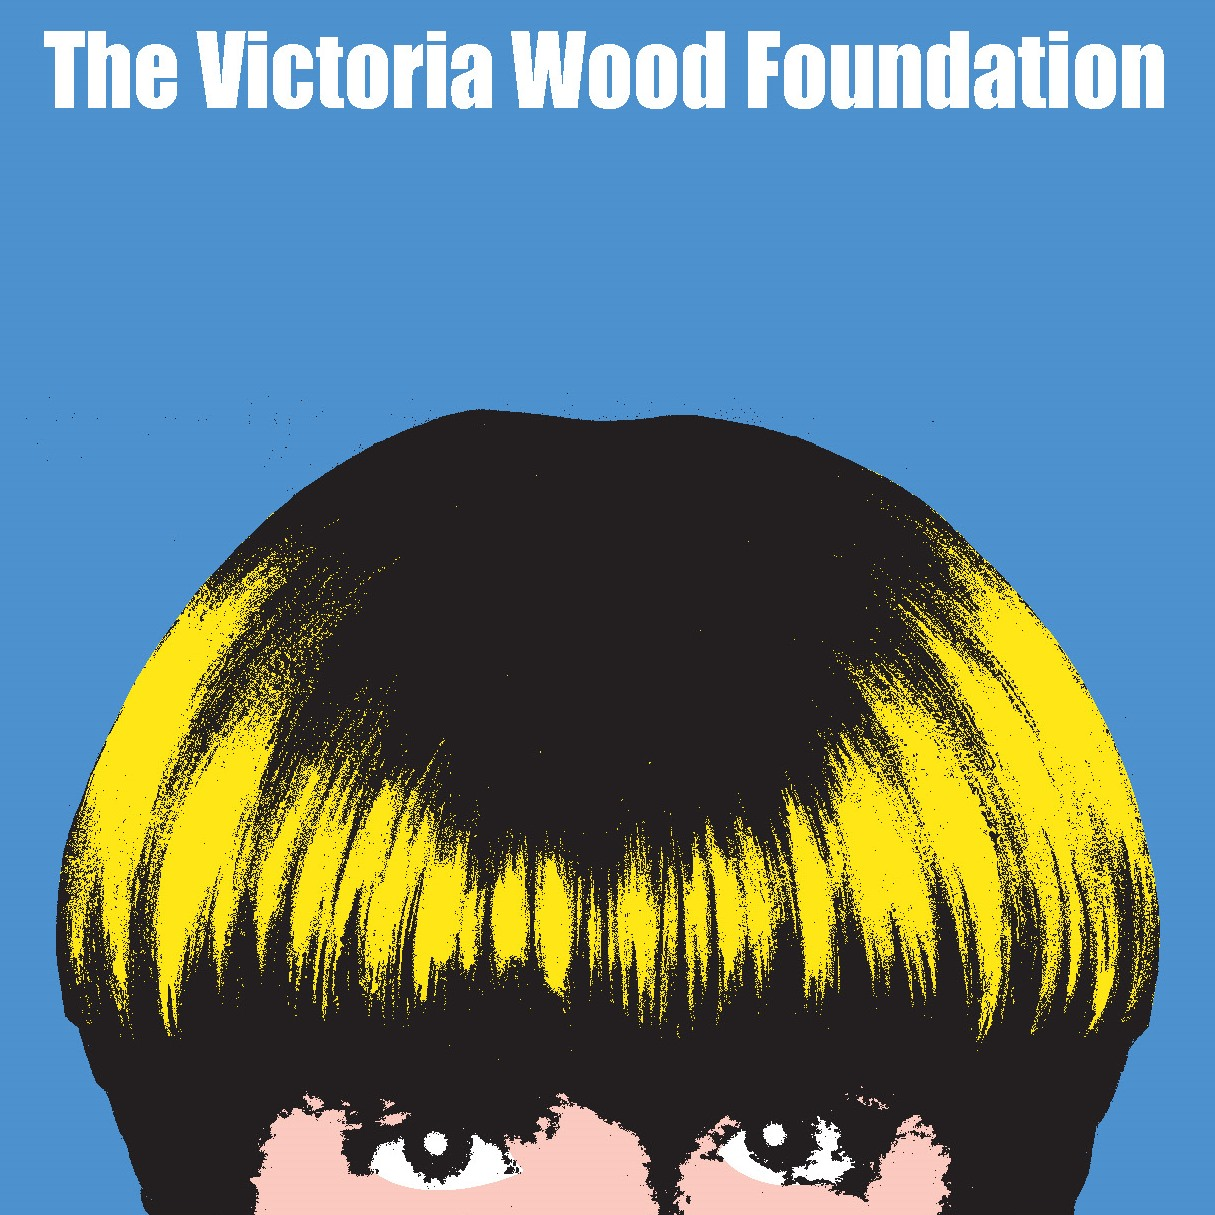 Victoria Wood Foundation Logo medium 2020 07 16 09 48 49 UTC